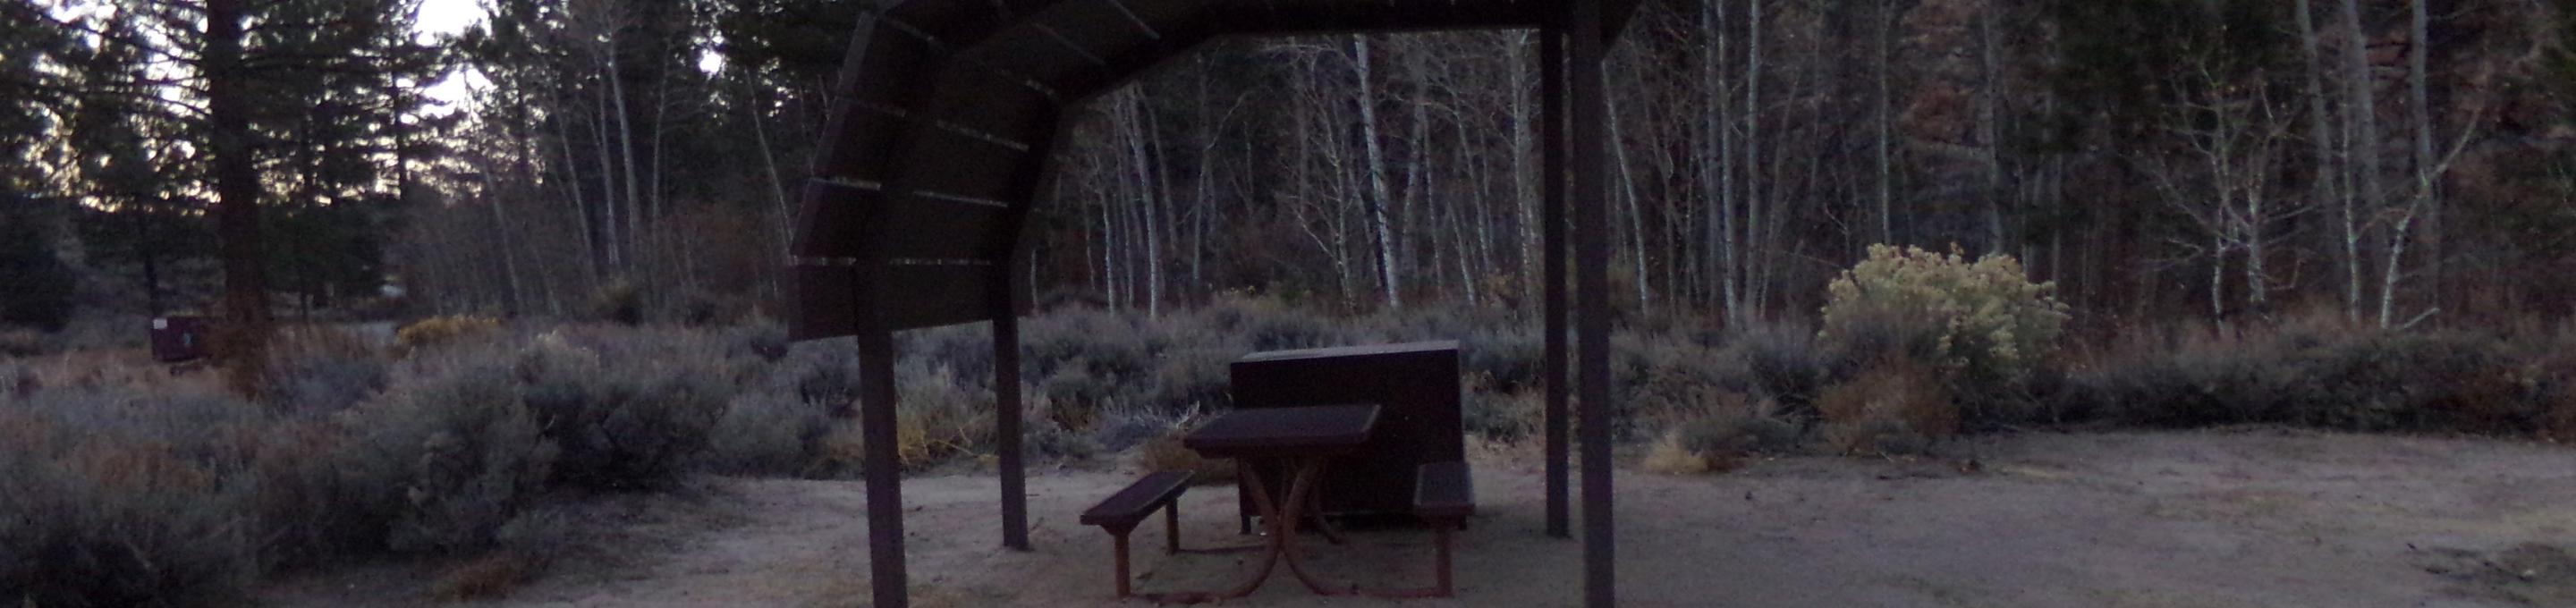 Tuff Campground site #17 featuring shaded picnic area with camping space and fire pit.